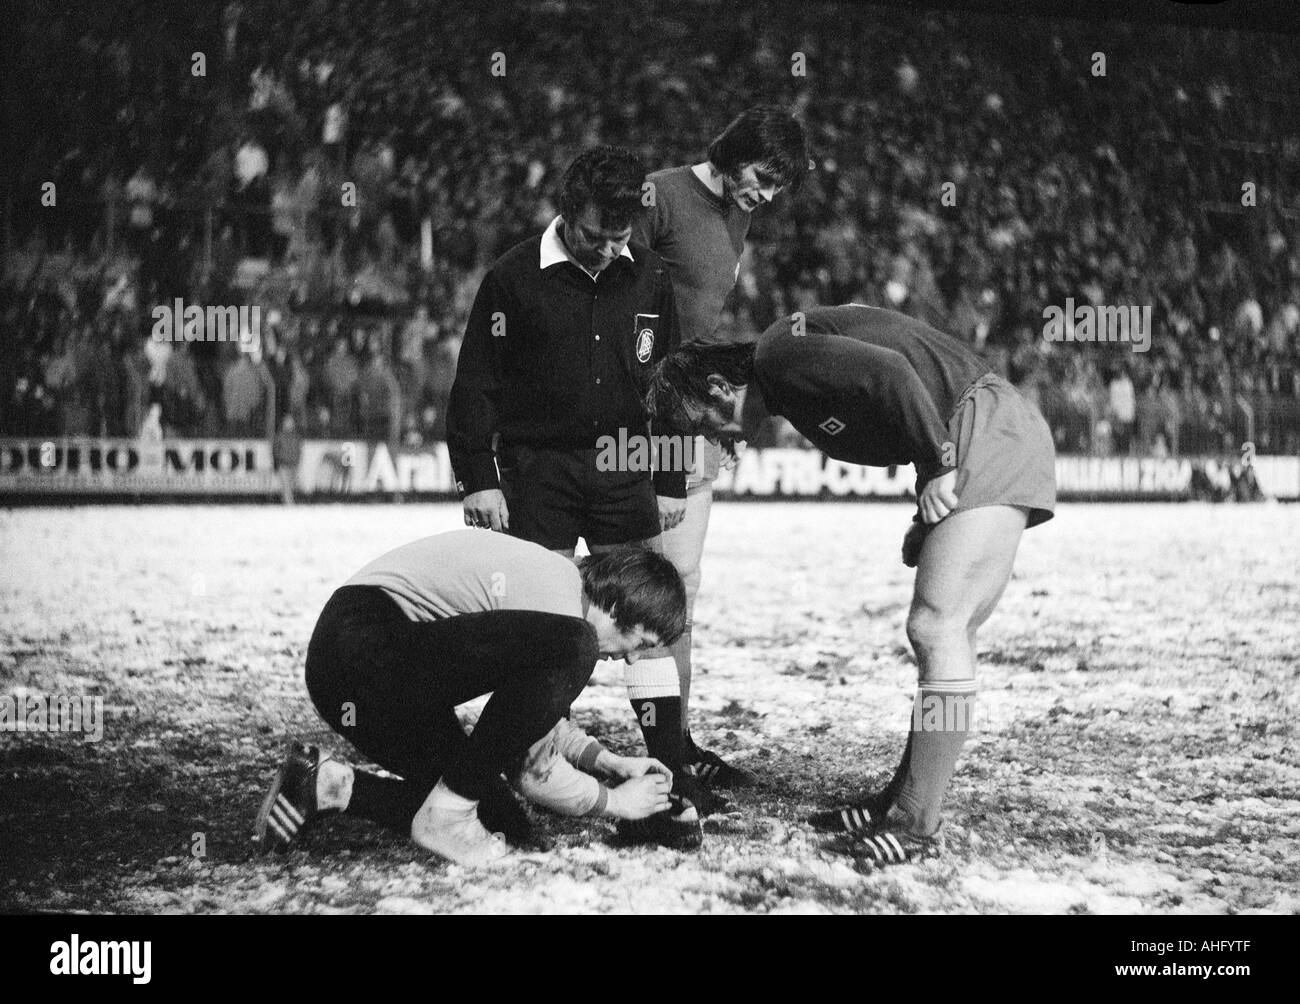 football, DFB Cup, eighth final, 1973/1974, Borussia Moenchengladbach versus Hamburger SV 2:2 after extra time, Boekelberg Stadium in Moenchengladbach, game on snow ground, scene of the match, time-out, keeper Rudolf Kargus (HSV) crouches and repairs his - Stock Image